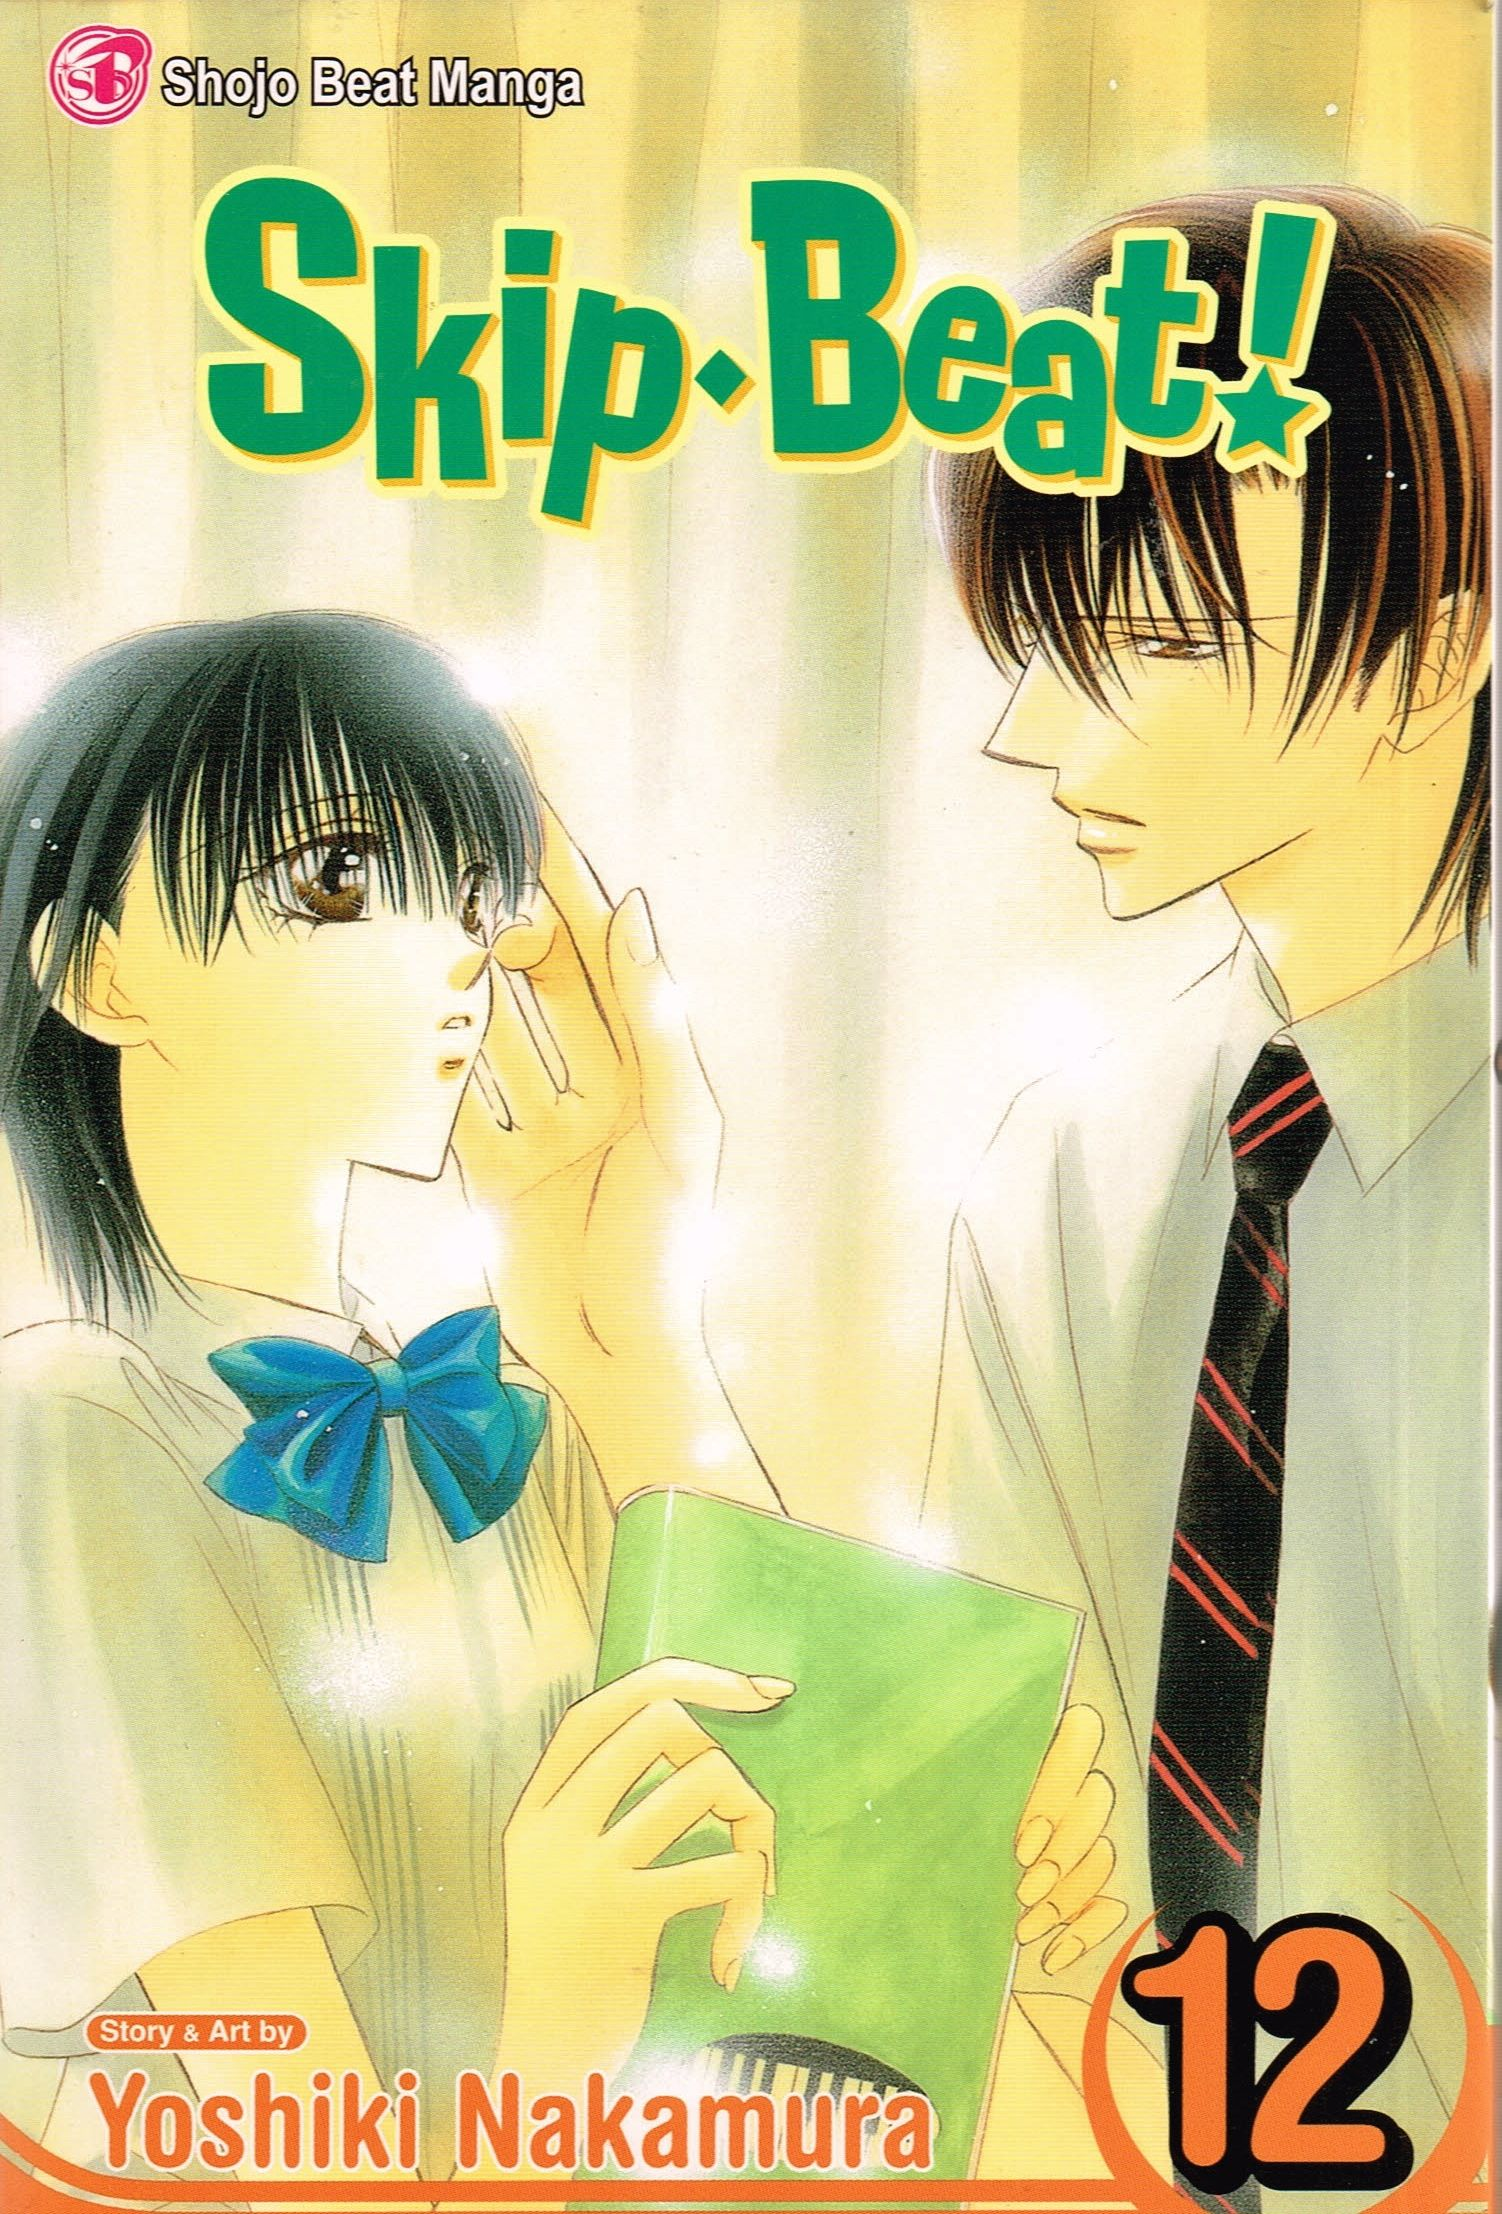 Skip Beat! vol 12 (2008) by Yoshiki Nakamura.  The Dark Moon acting crisis, and Kyoko tries counselling as Bo the chicken. Finished 27th Dec 2014, have read lots.